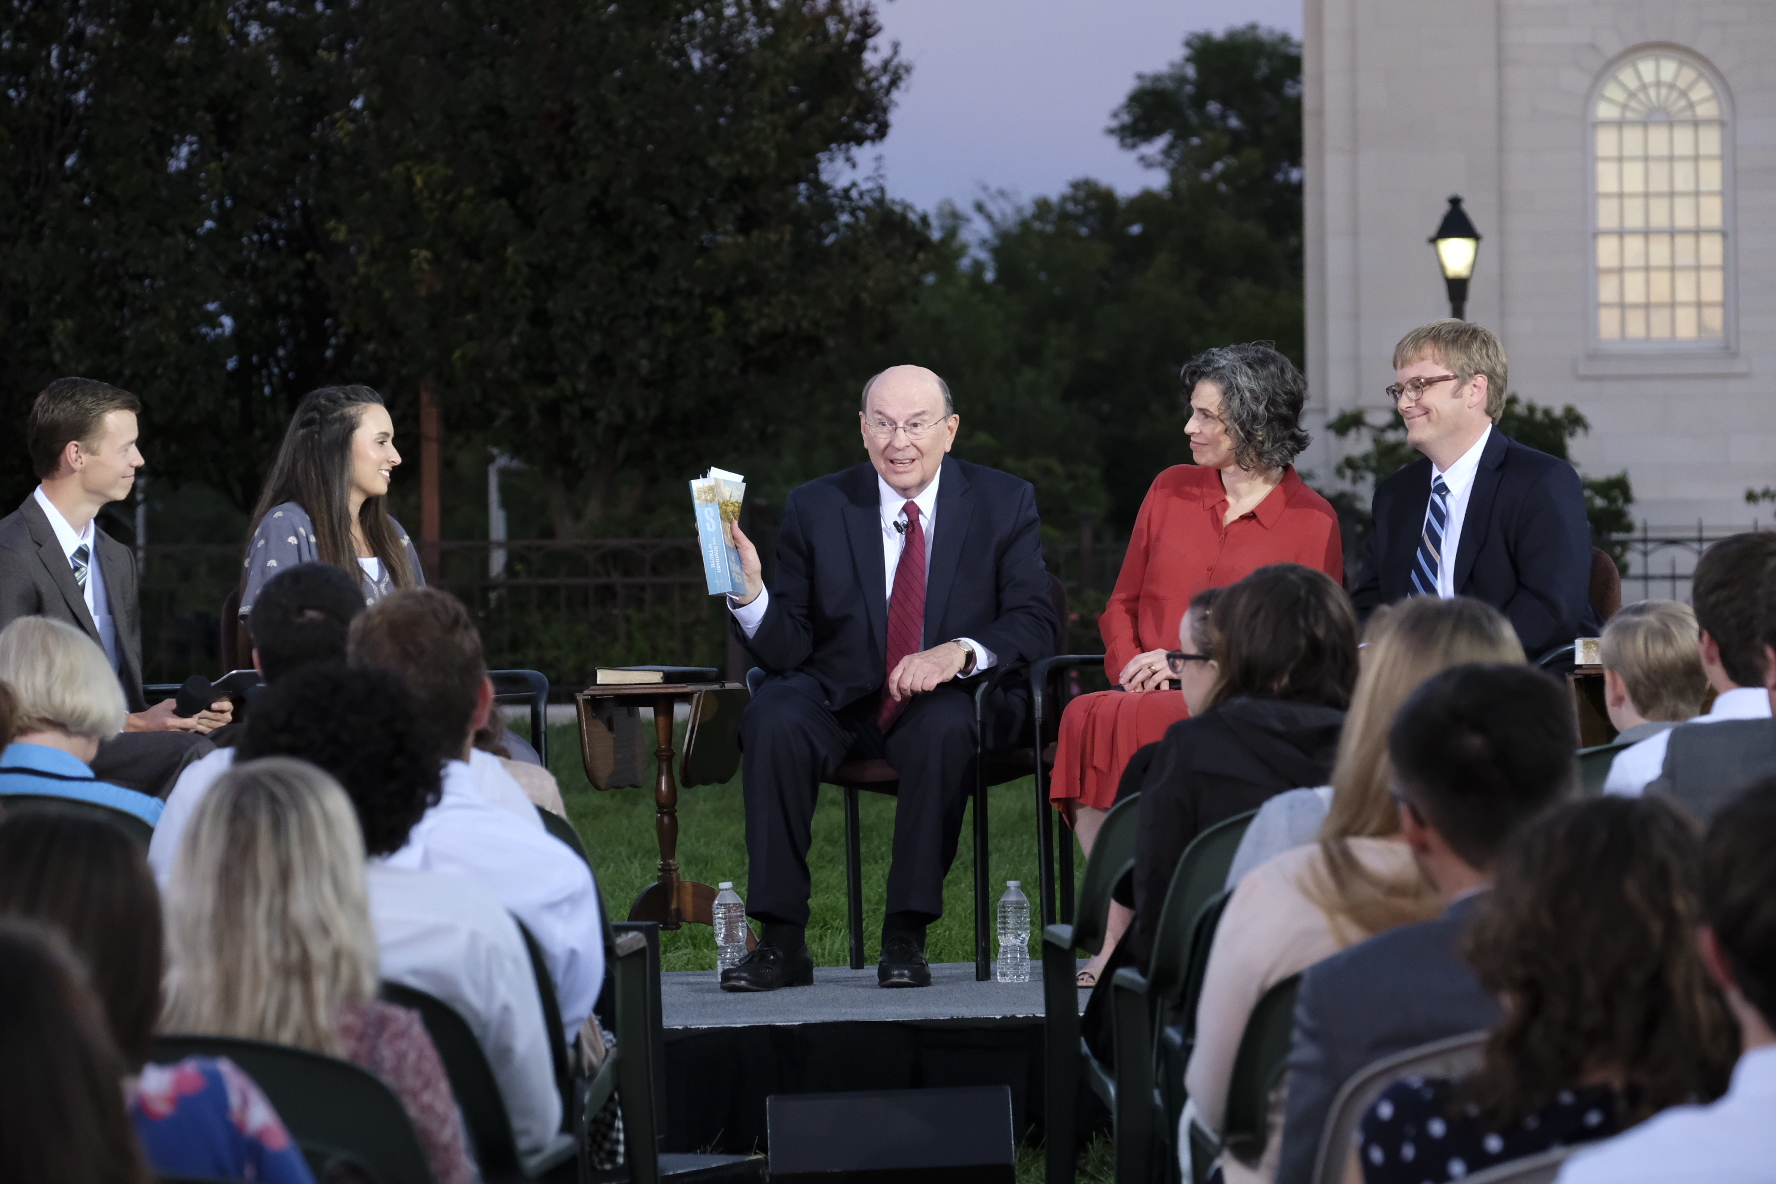 """Elder Quentin L. Cook of the Quorum of the Twelve Apostles, center, addresses young adults ages 18 to 30 during a worldwide """"Face to Face"""" broadcast focusing on the history of the Church. Also participating were Church historians Kate Holbrook and Matt Grow in the Sept. 9, 2018 event."""